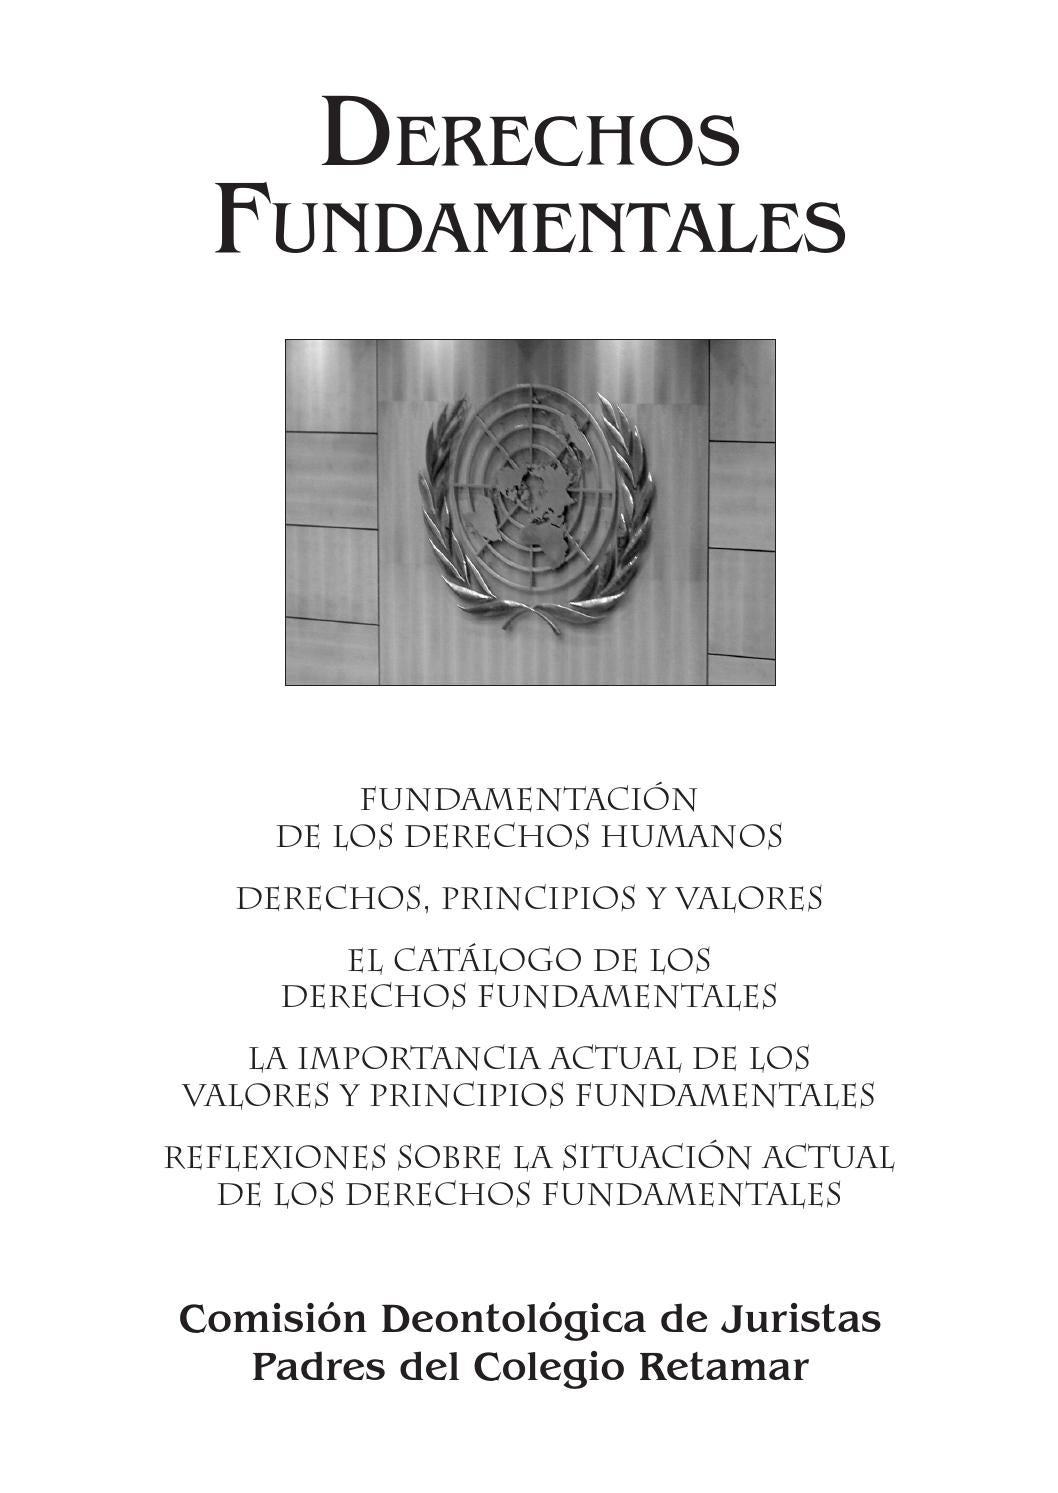 Camino Hormigueras 180 Madrid Derechos Fundamentales 2007 By Retamatch Issuu